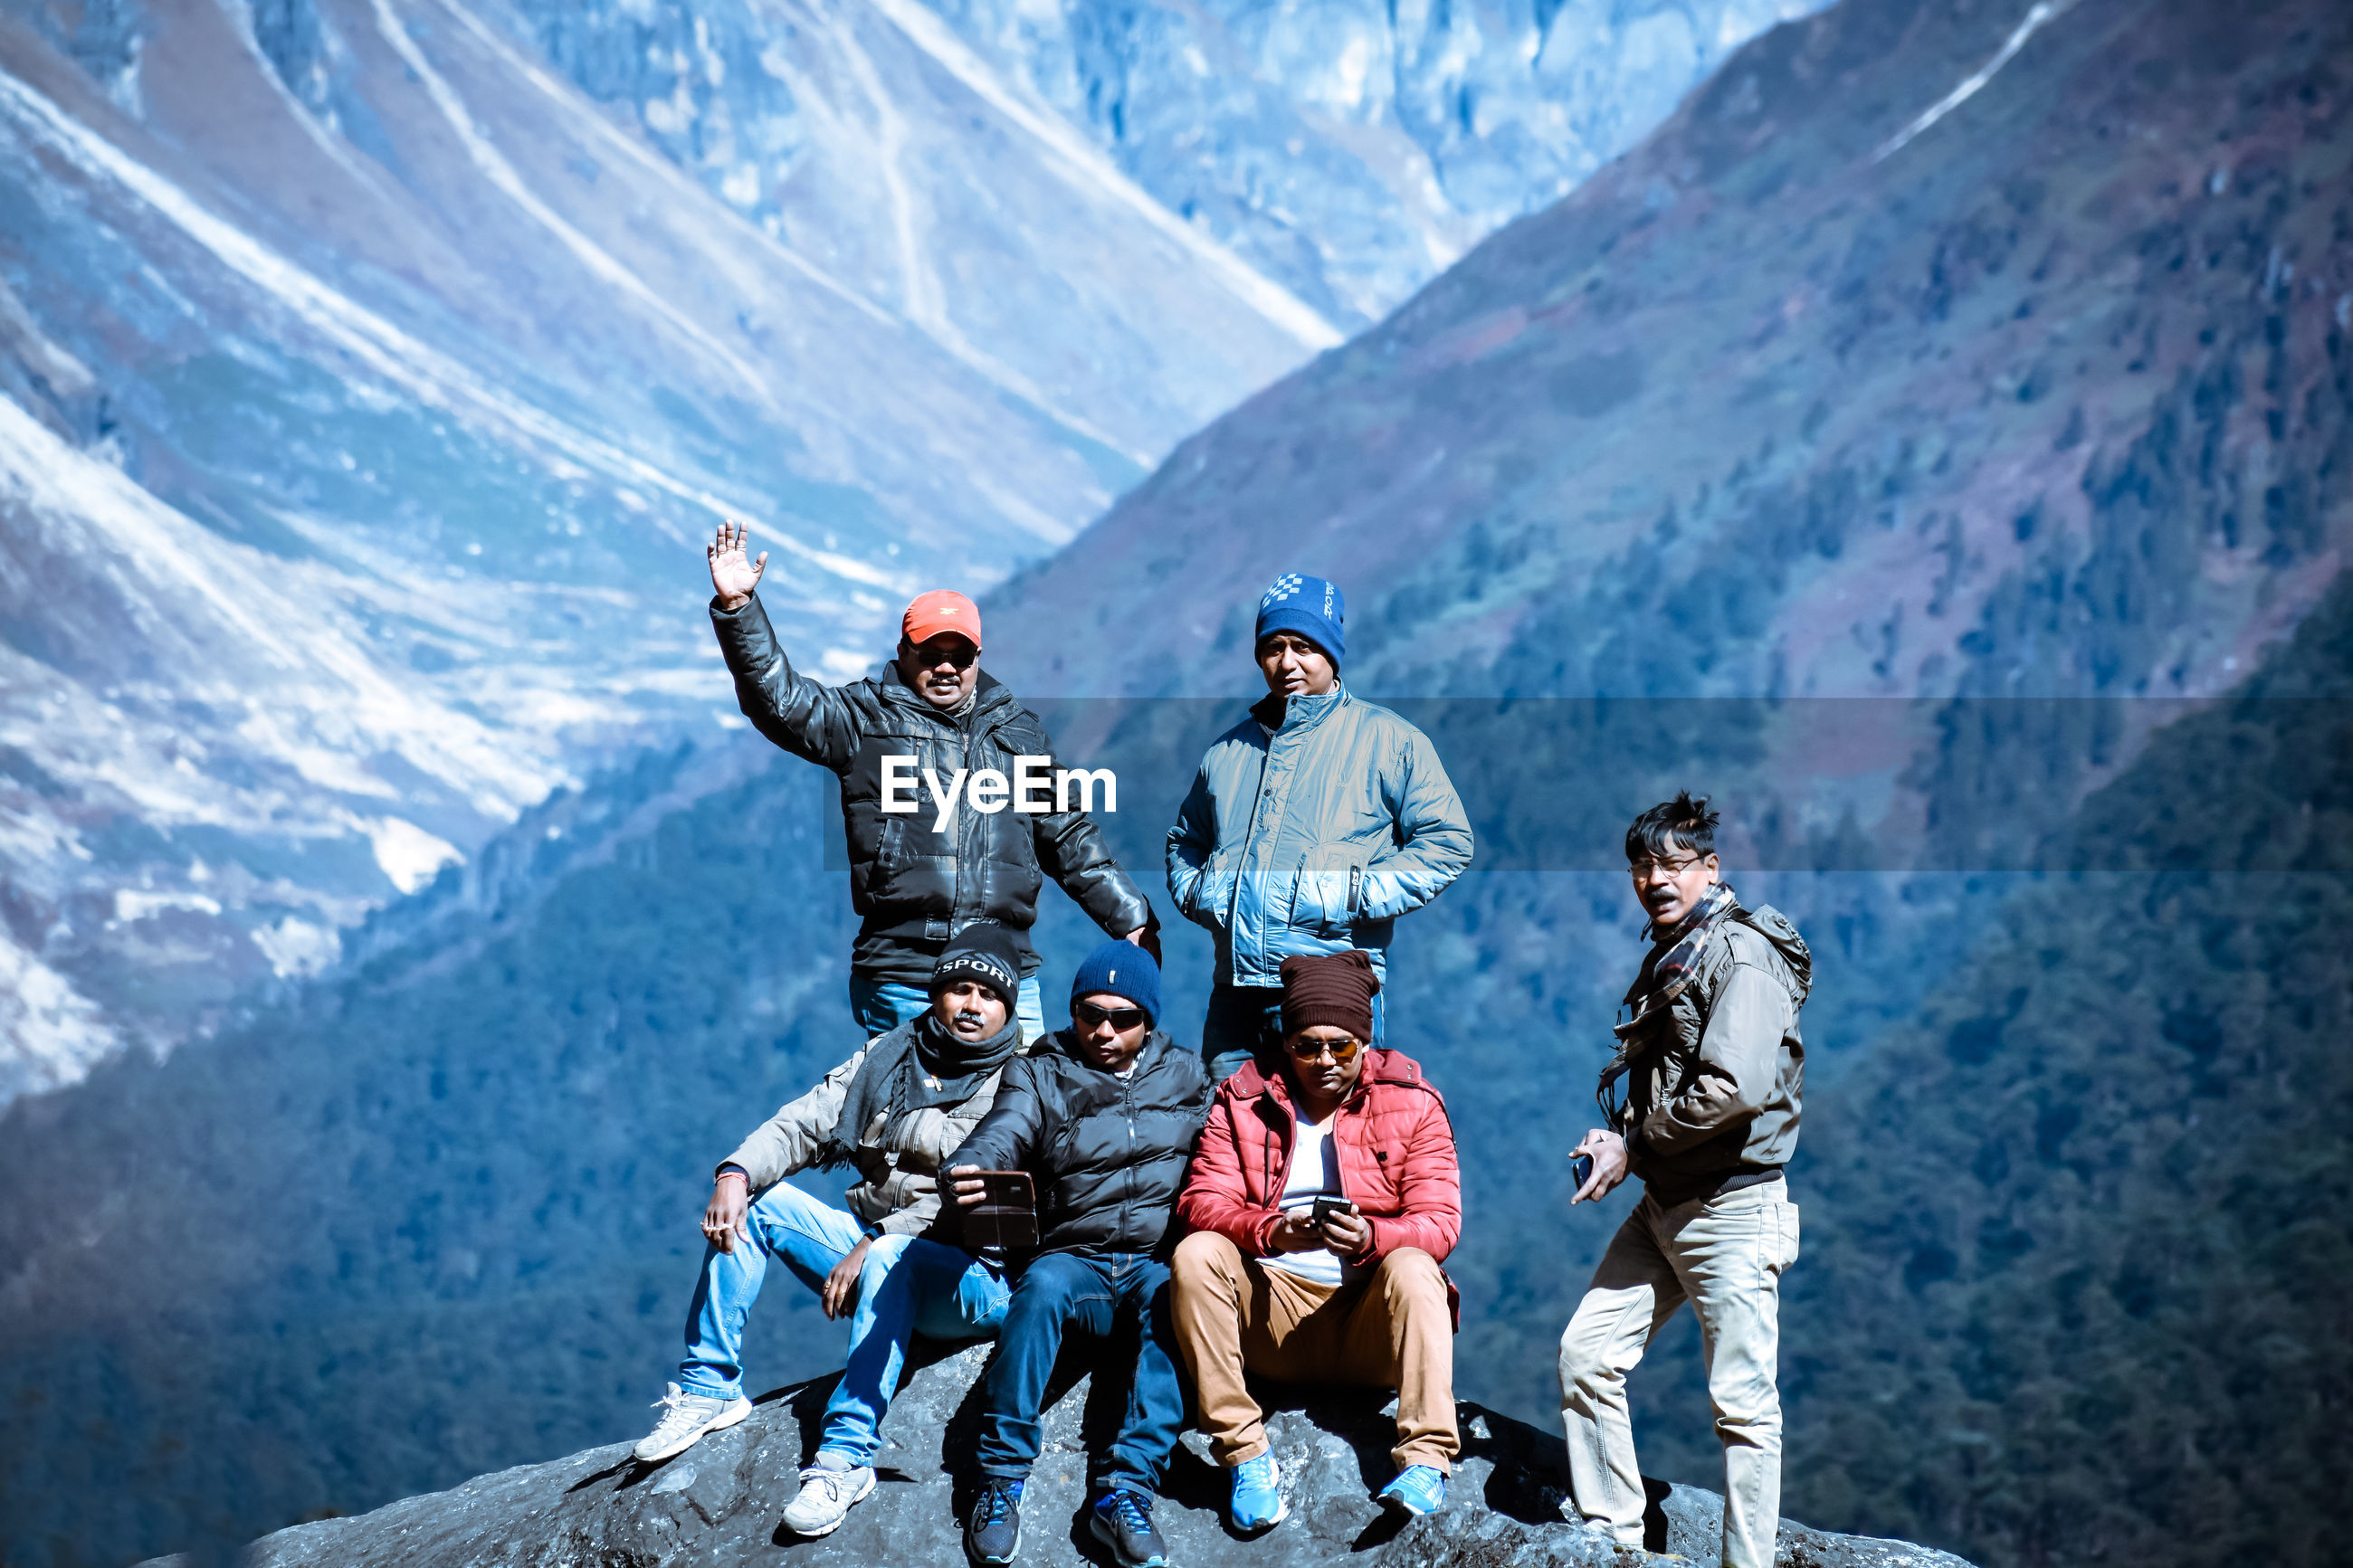 PEOPLE ON SNOW COVERED MOUNTAINS AGAINST MOUNTAIN